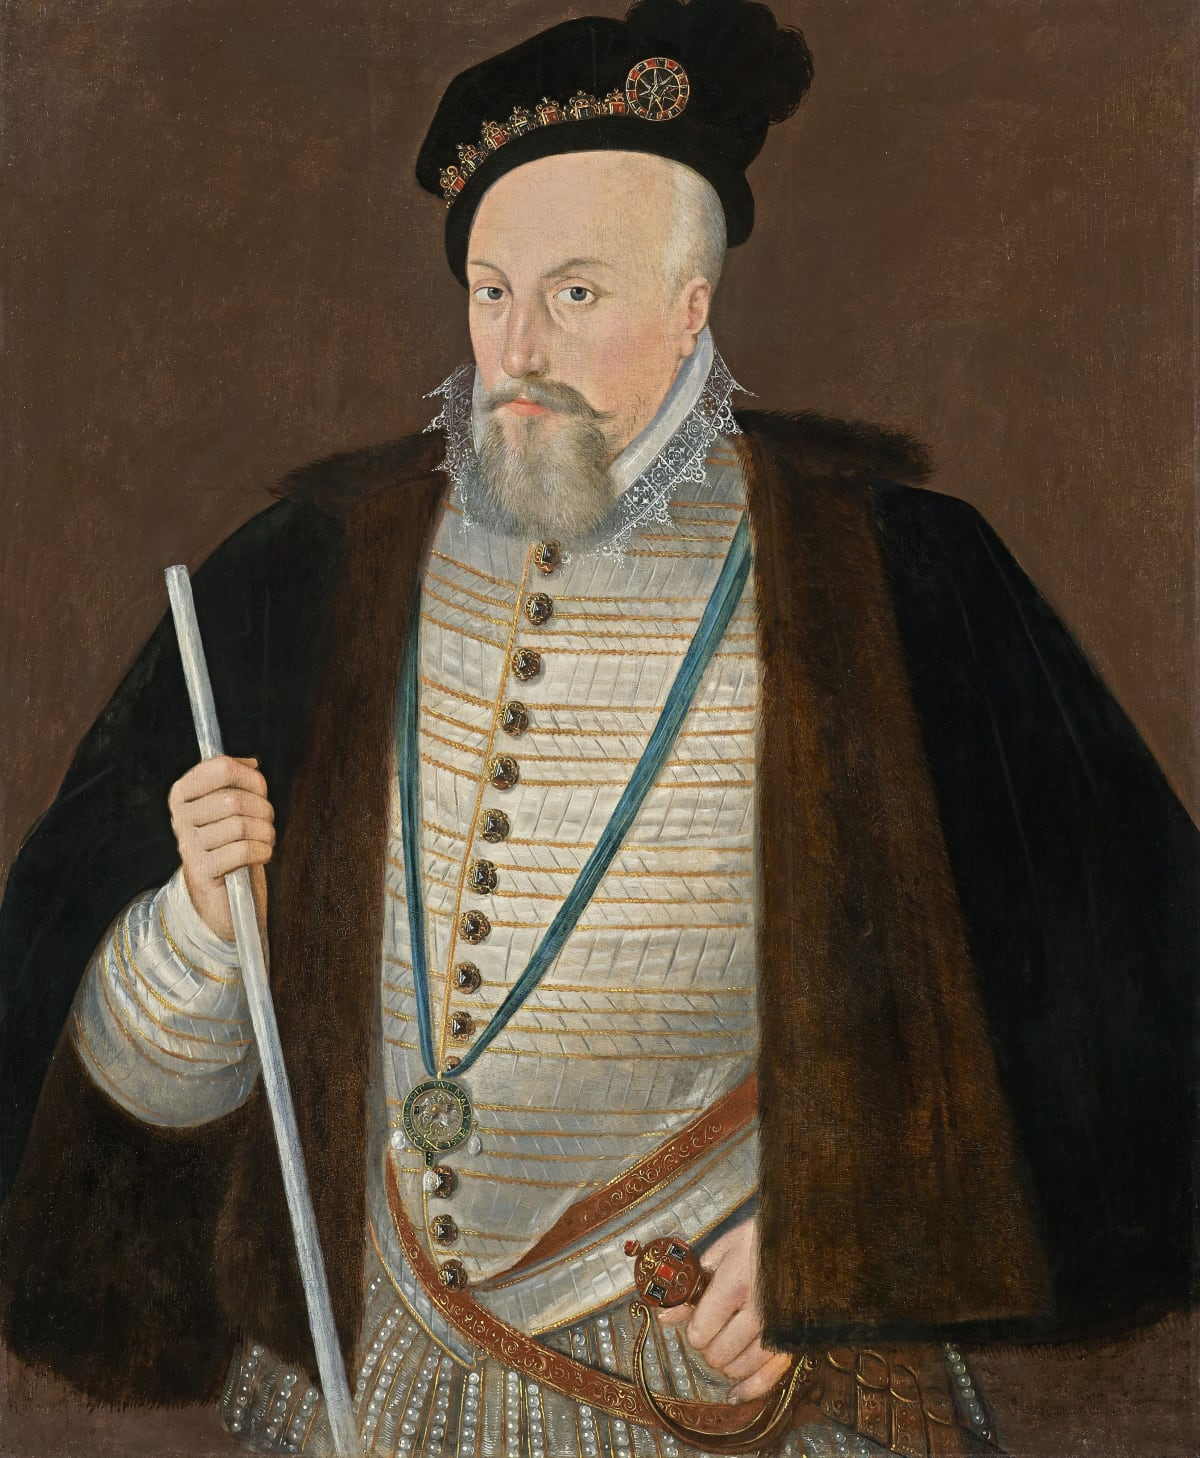 Attributed to Sir William Segar (c.1554 – 1633) Robert Dudley, 1st Earl of Leicester (1532 – 1588), circa 1587 Oil on panel 35 x 29 ¾ in. (88.9 x 75.6 cm.)